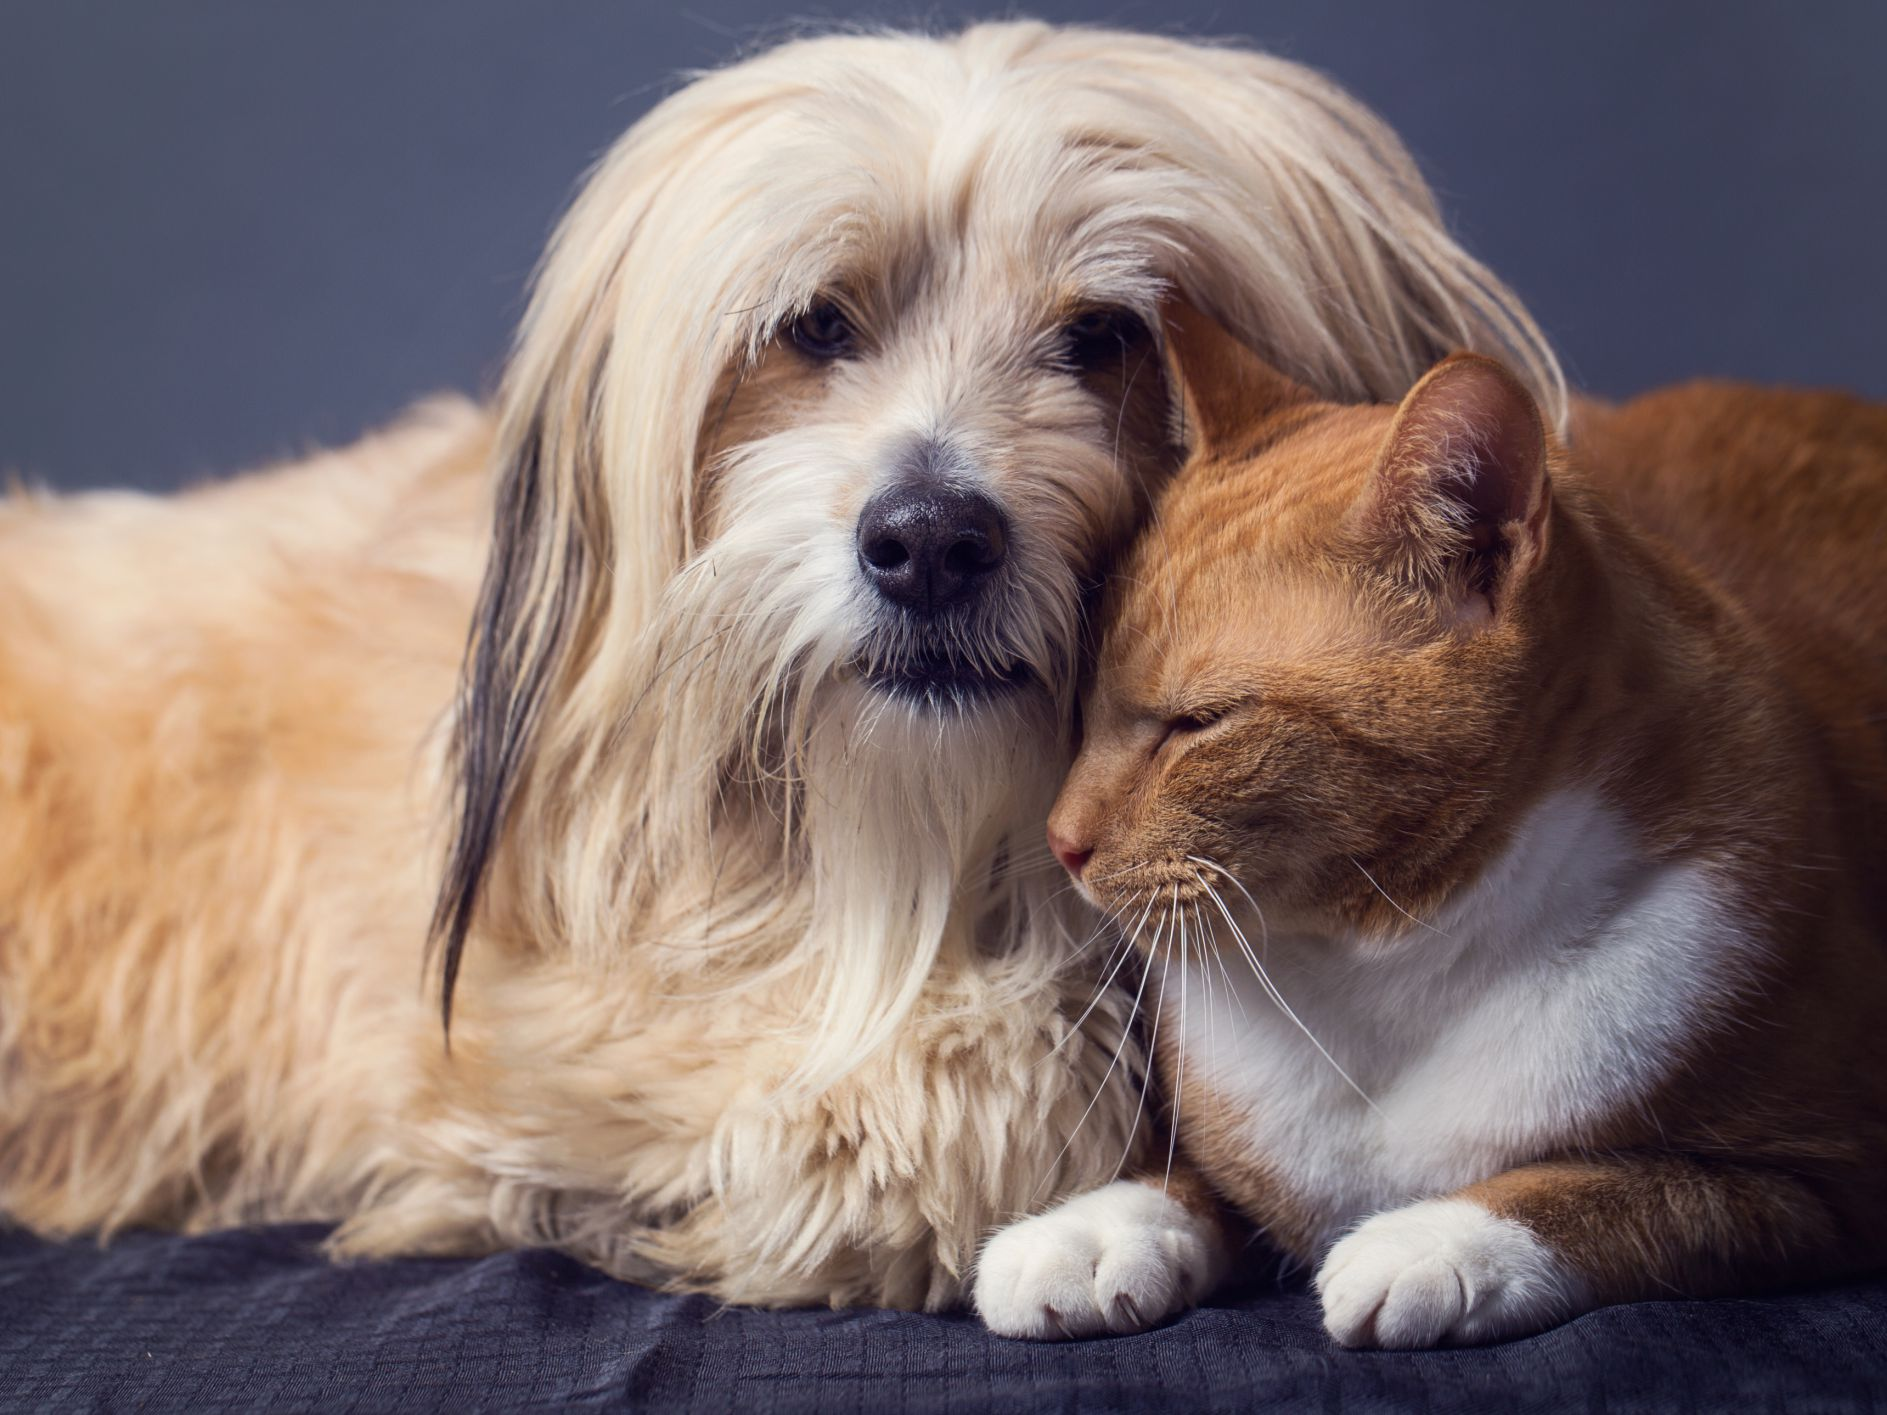 Phenobarbital Is Used to Treat Seizures in Cats